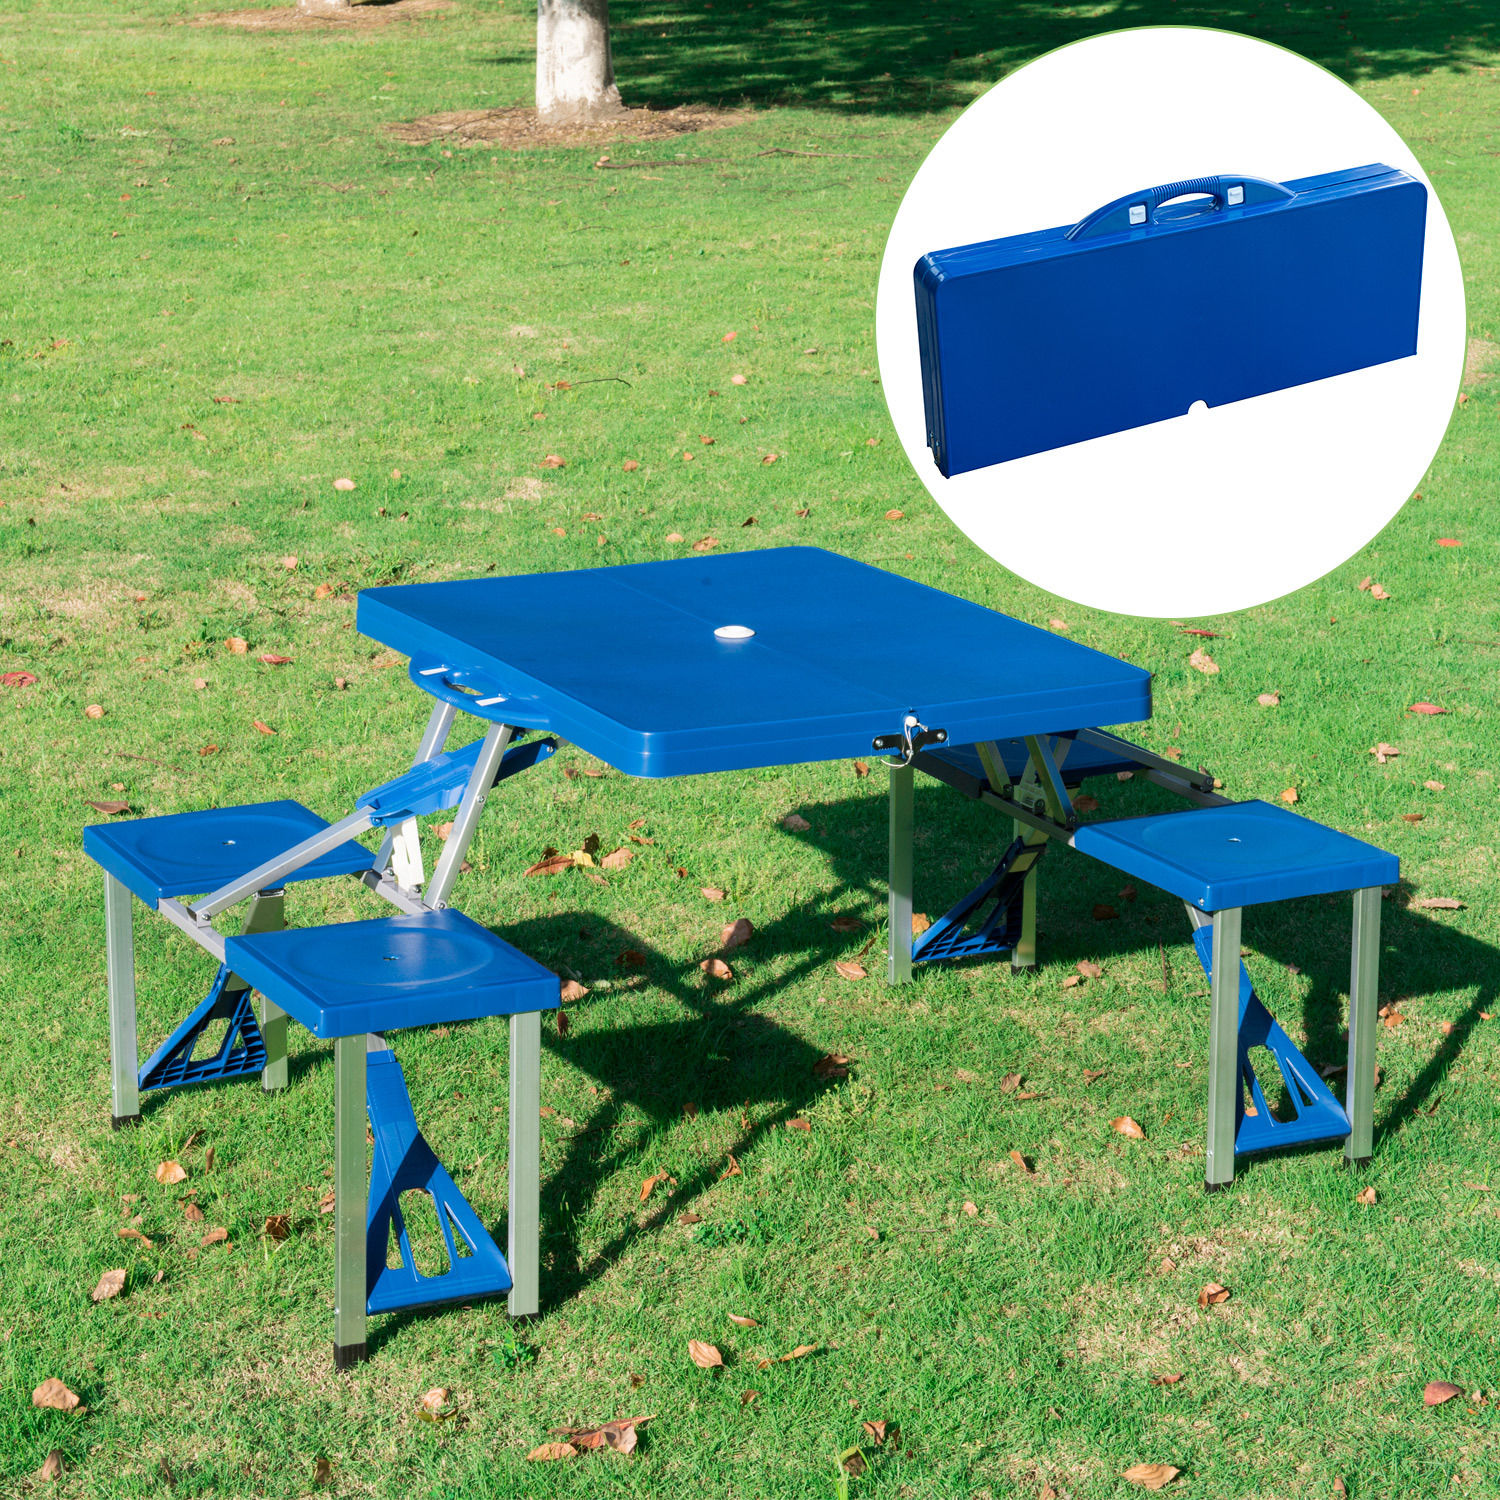 Portable-Folding-Camping-Picnic-Table-Party-Outdoor-Garden-Chair-Stools-Set thumbnail 16